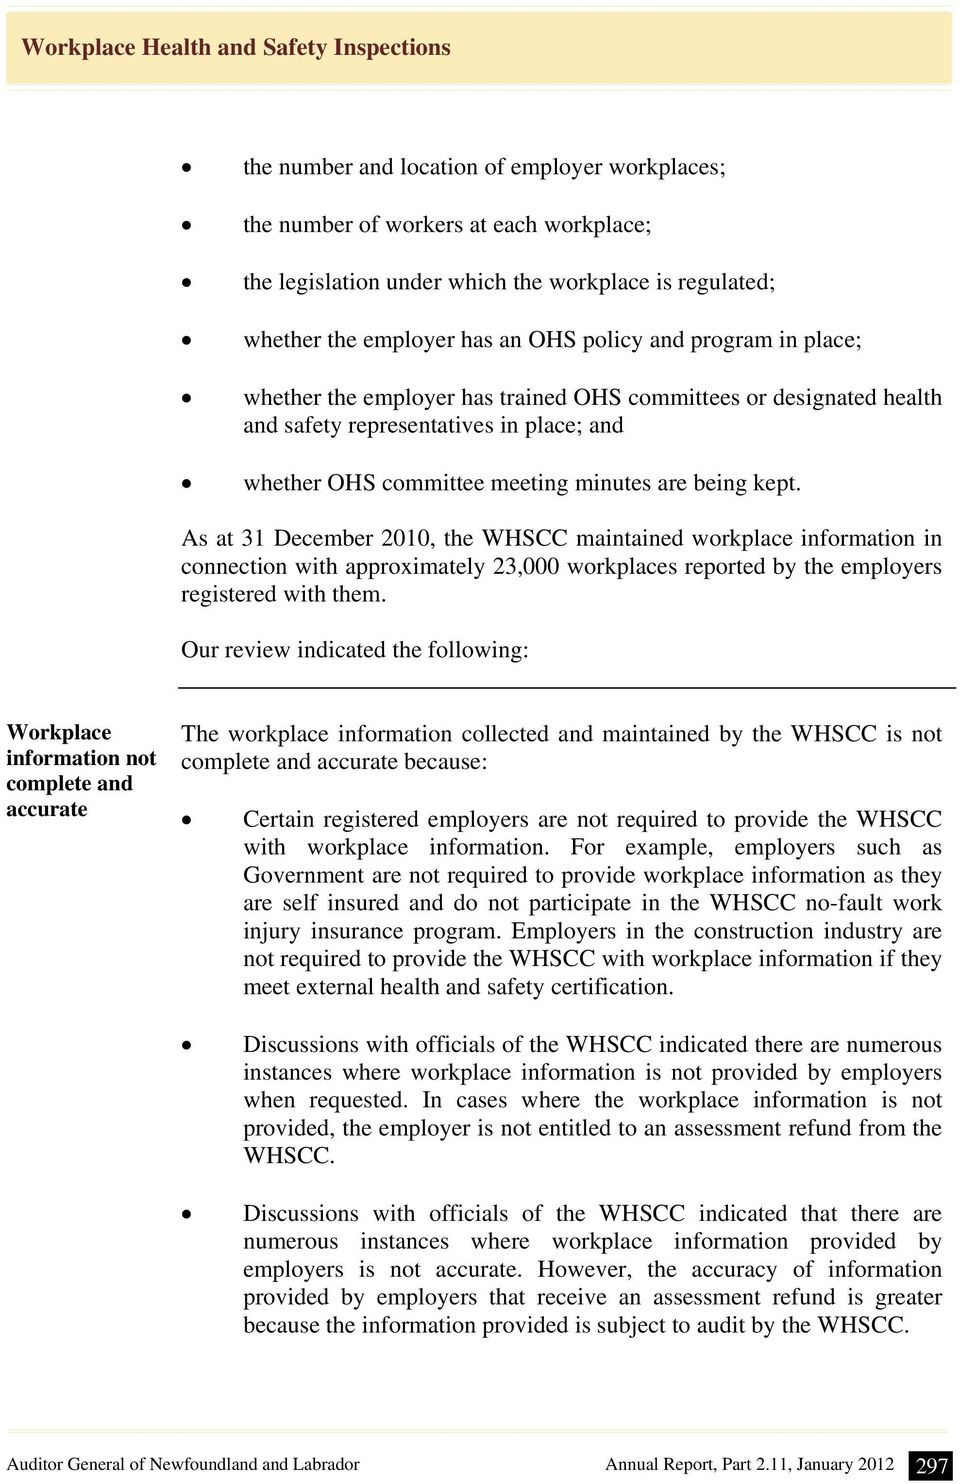 As at 31 December 2010, the WHSCC maintained workplace information in connection with approximately 23,000 workplaces reported by the employers registered with them.